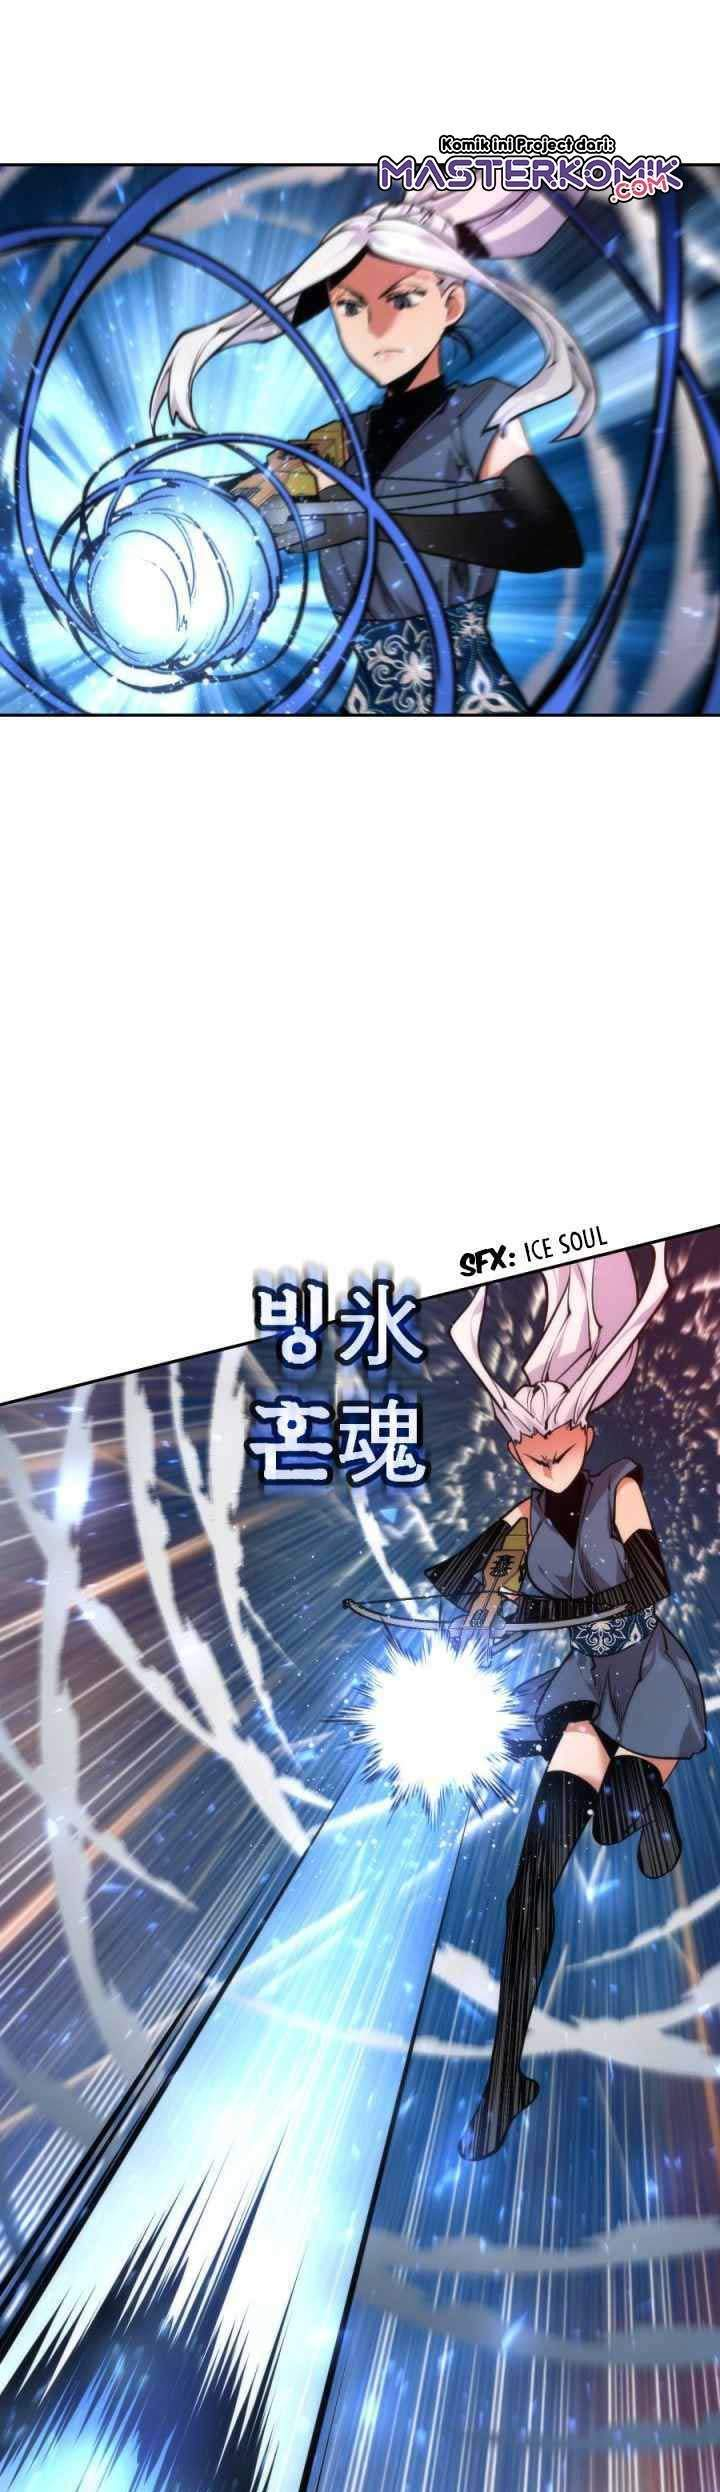 The Golden Age Chapter 28